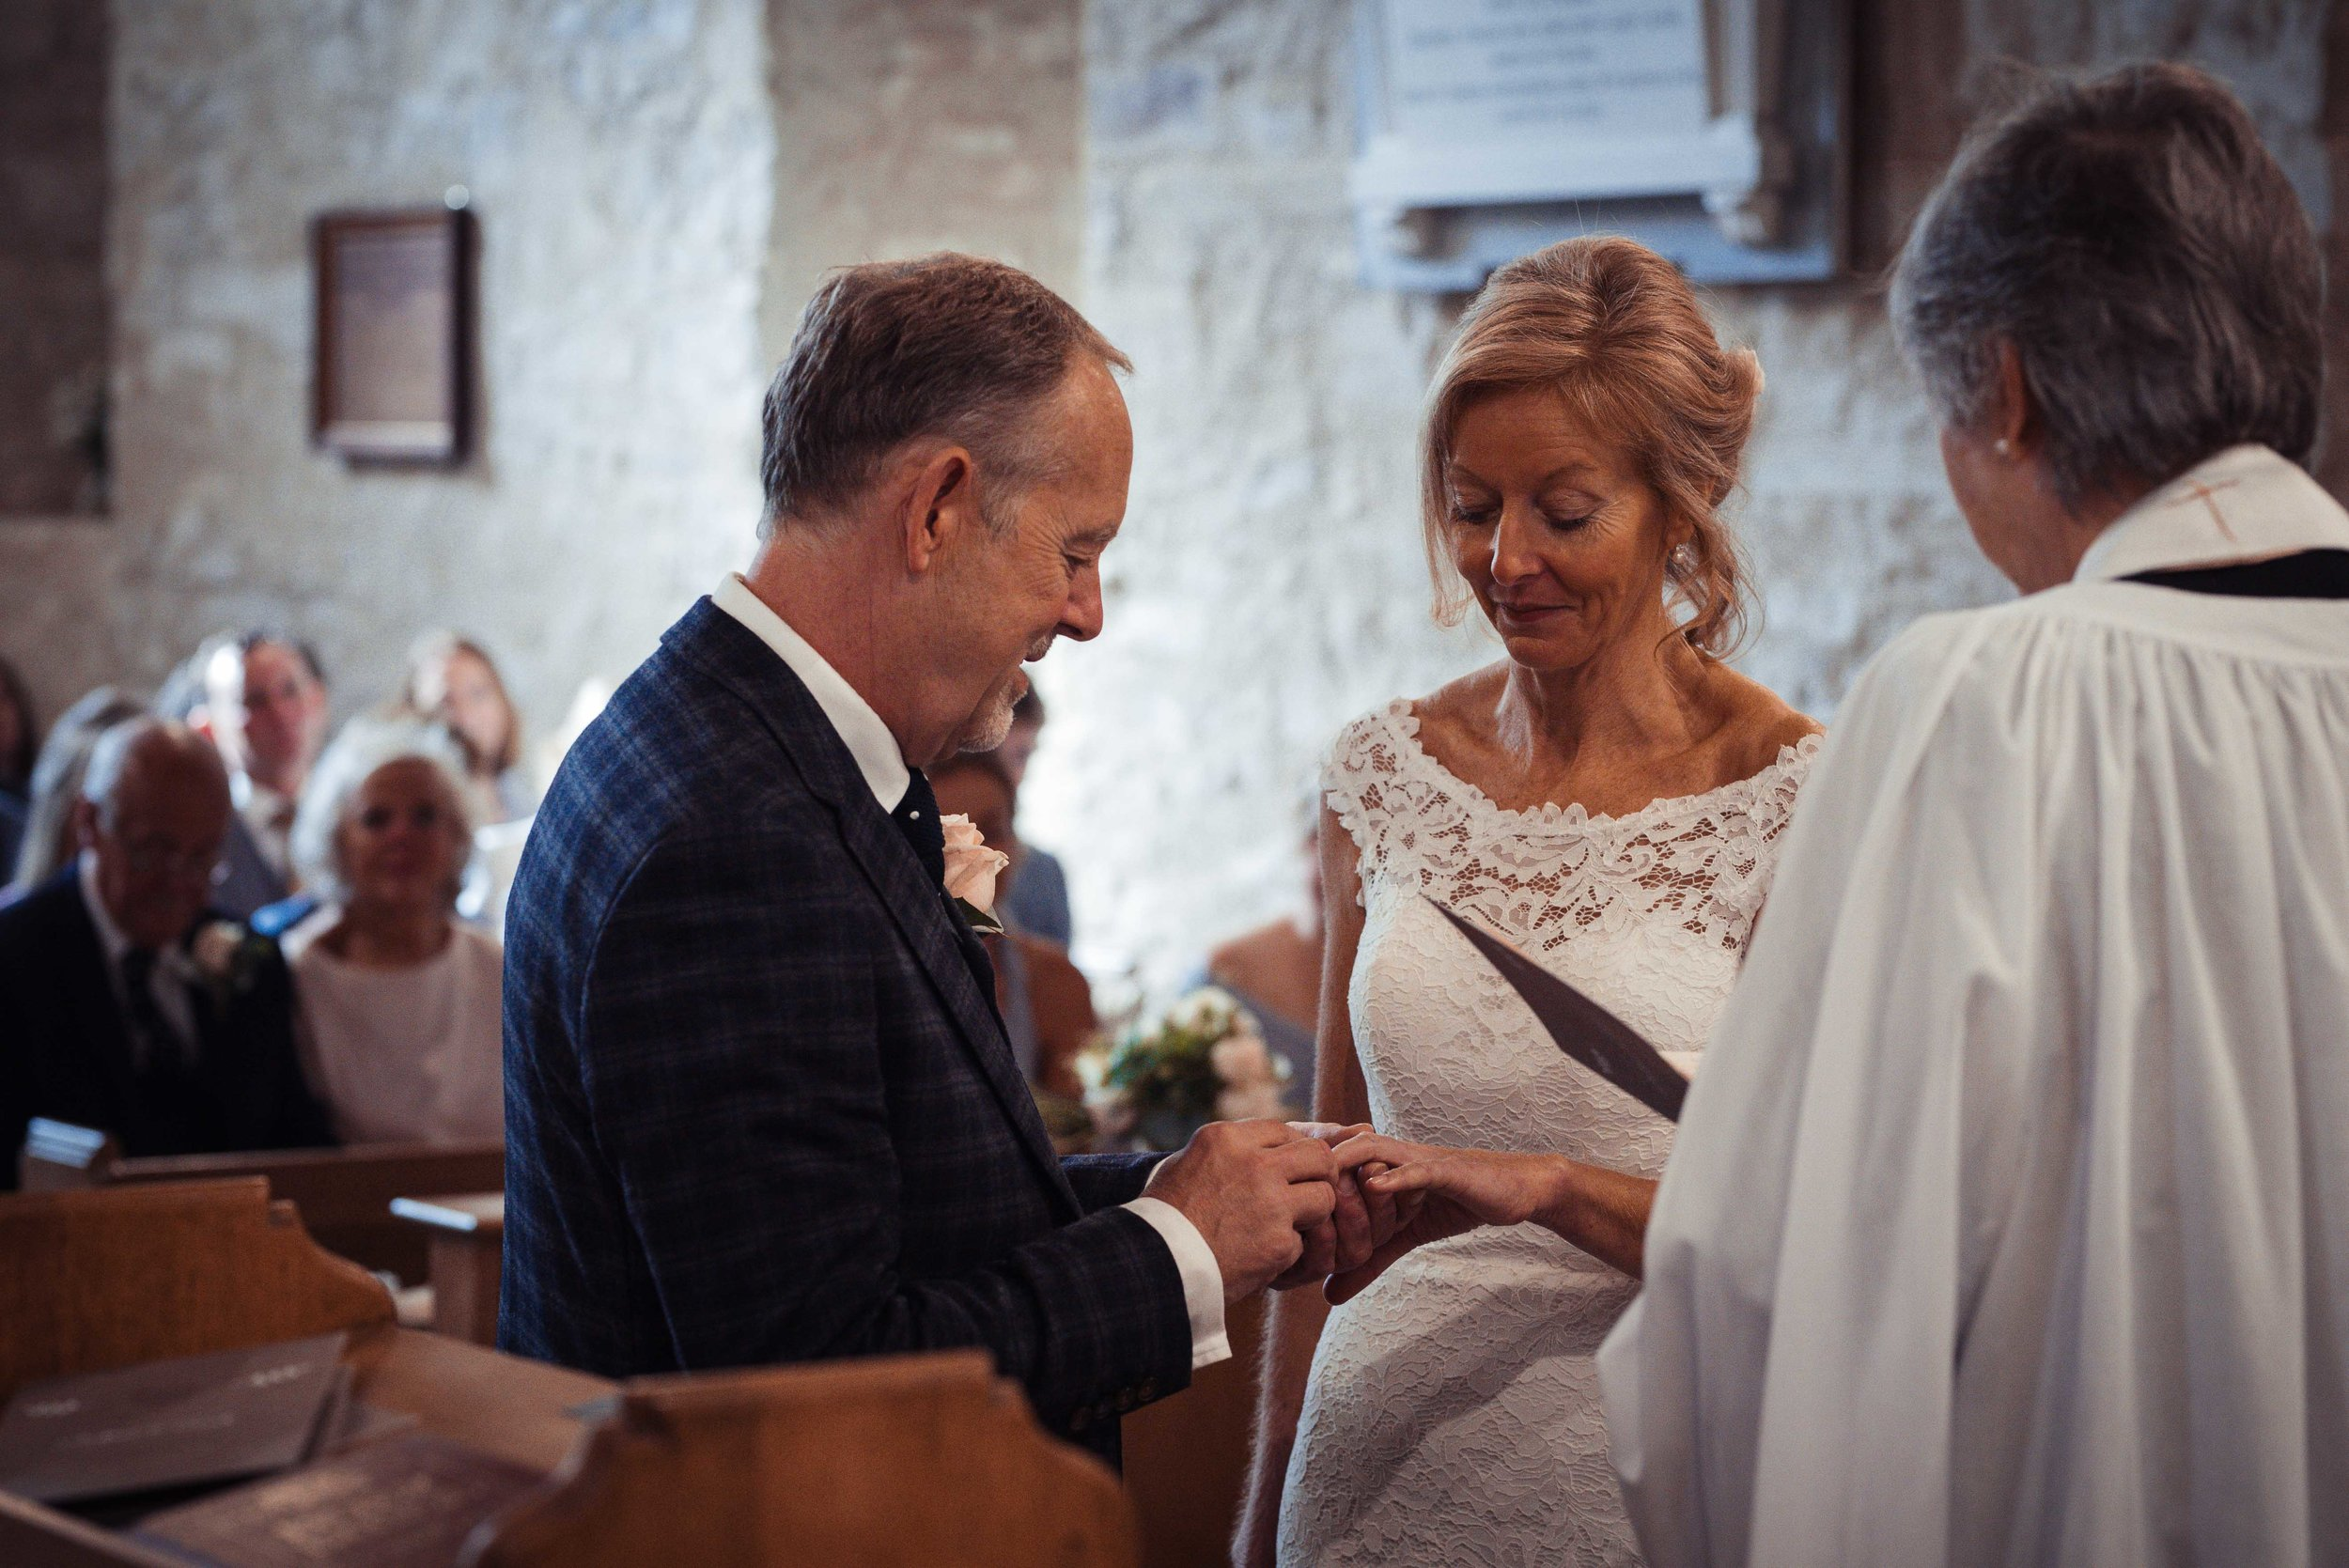 The bride and groom exchange rings during their lake district wedding